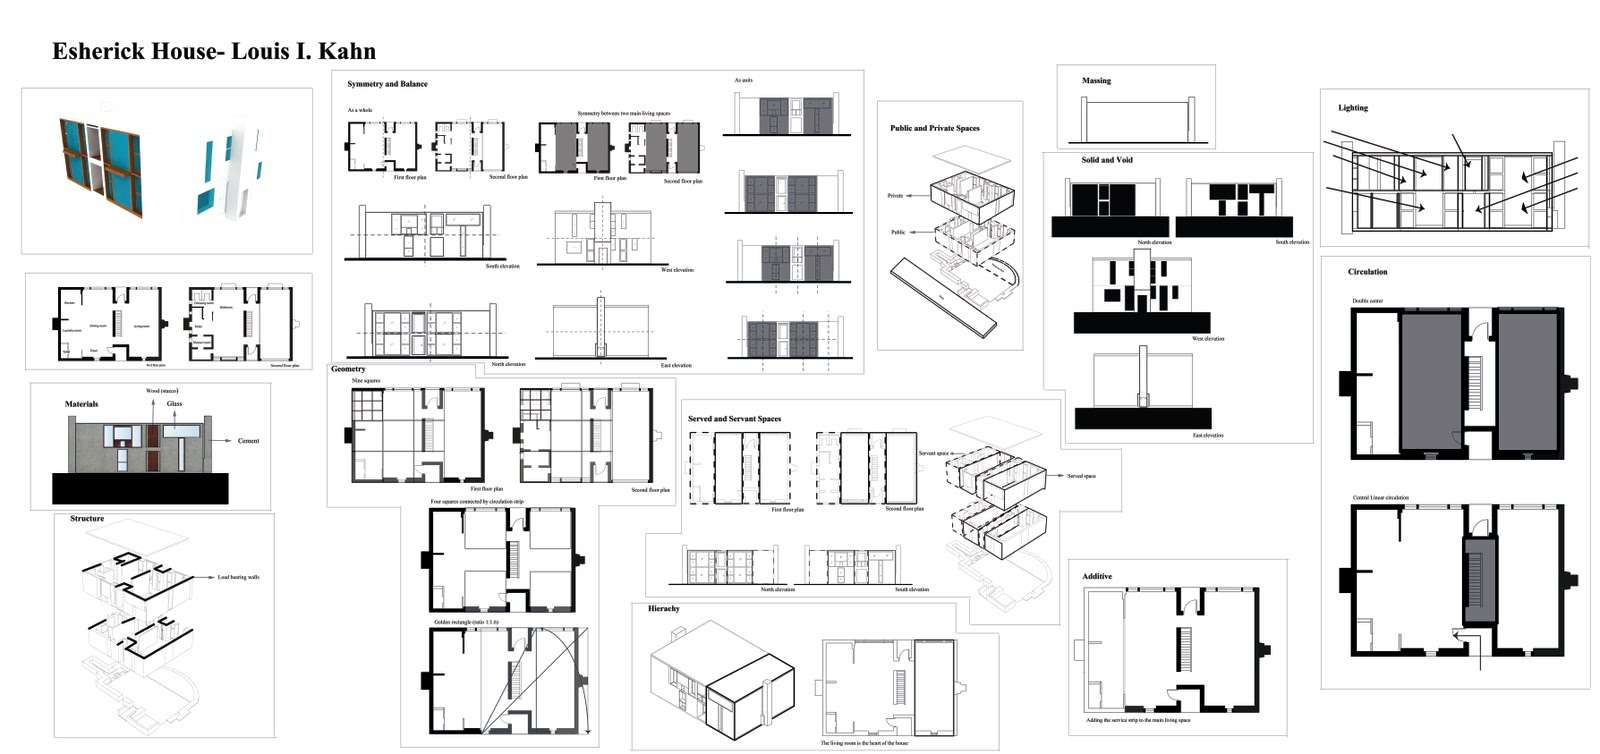 Esherick House Plan Whatif Indadesign Blogspot